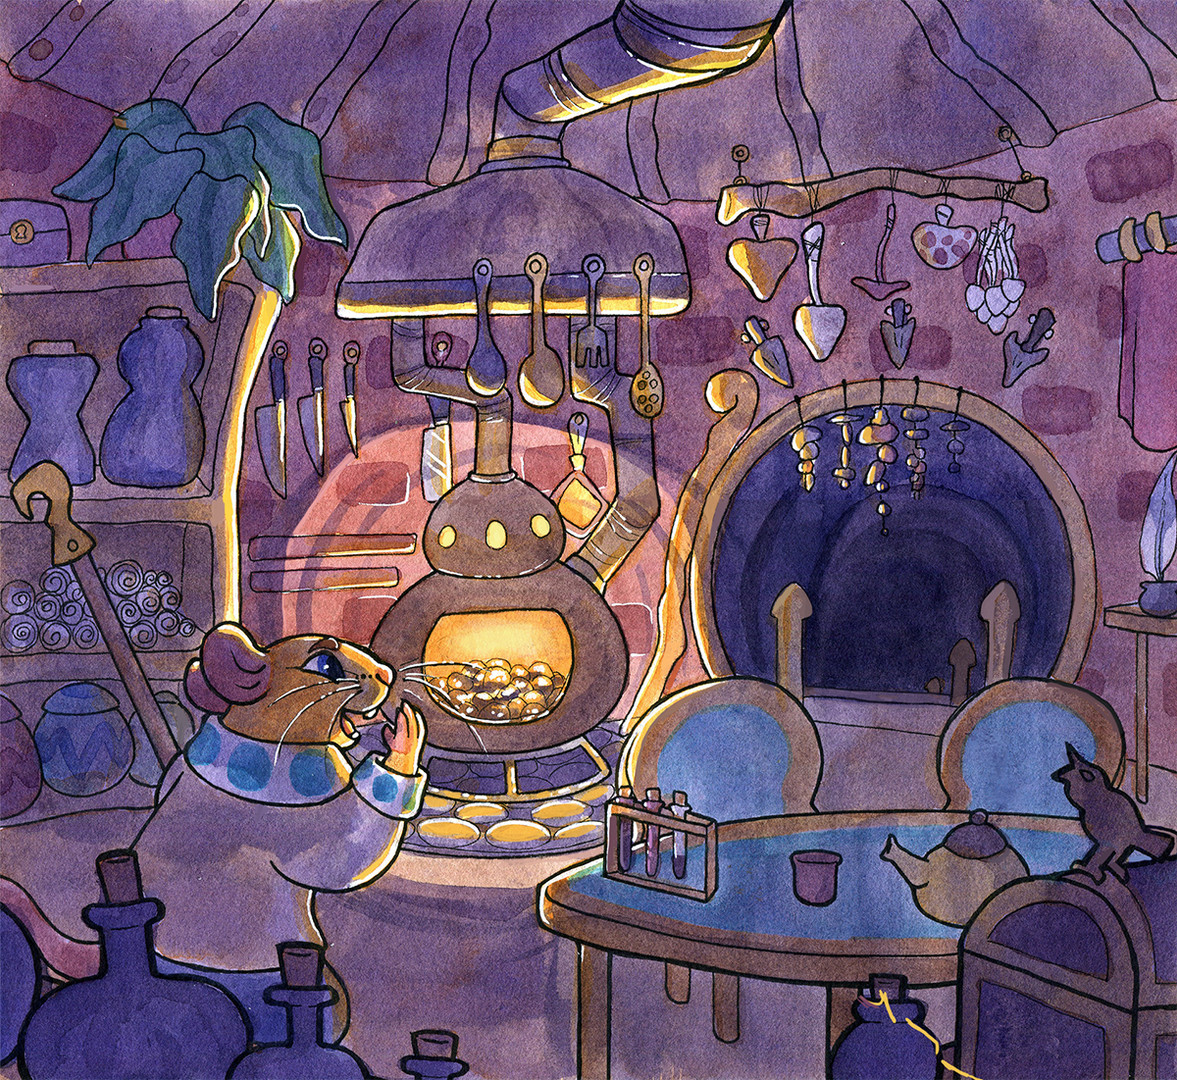 A panel from Taxicat, showing the interior of the protagonist's home